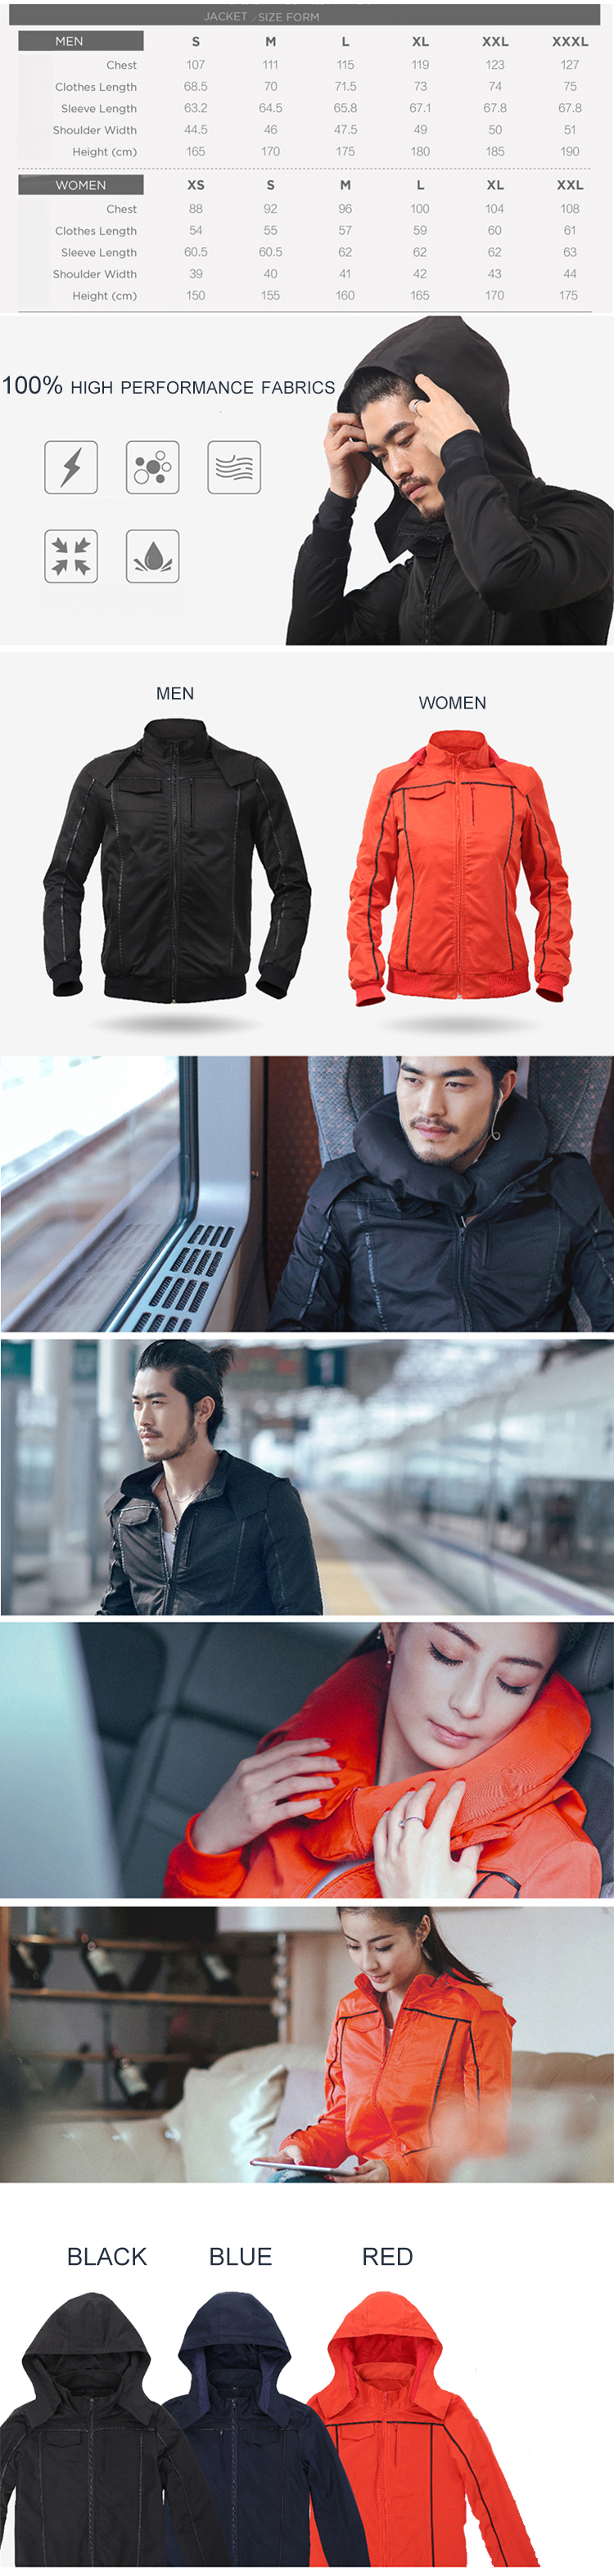 13 in 1 Smart Multi Pocket Travel Jacket with Built-in Neck Pillow Eye Mask Gloves Earphone Holders